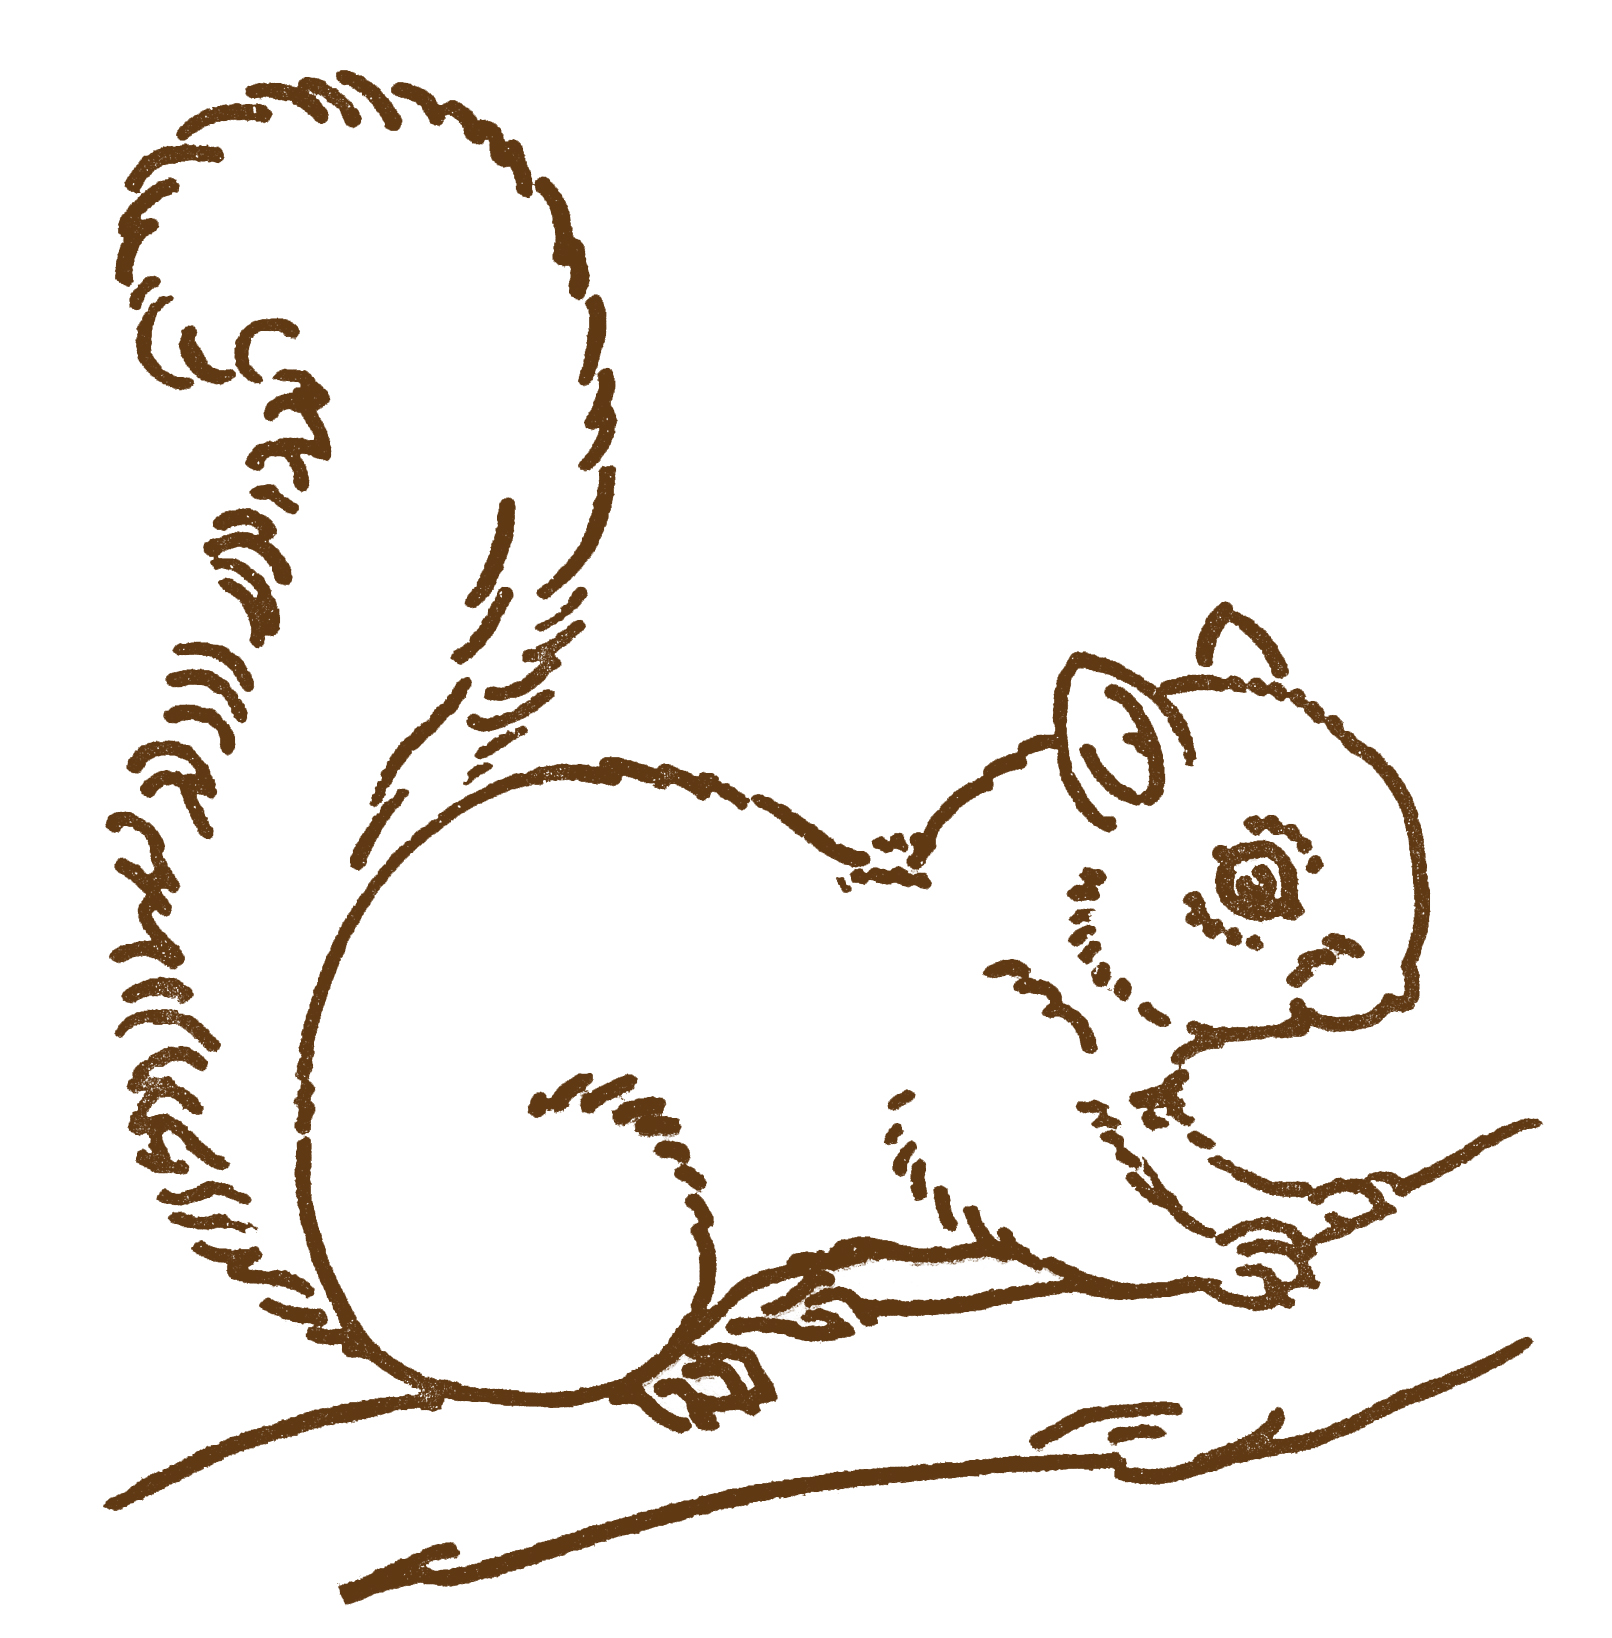 Line Drawing Clip Art : Free line art images squirrel drawings the graphics fairy